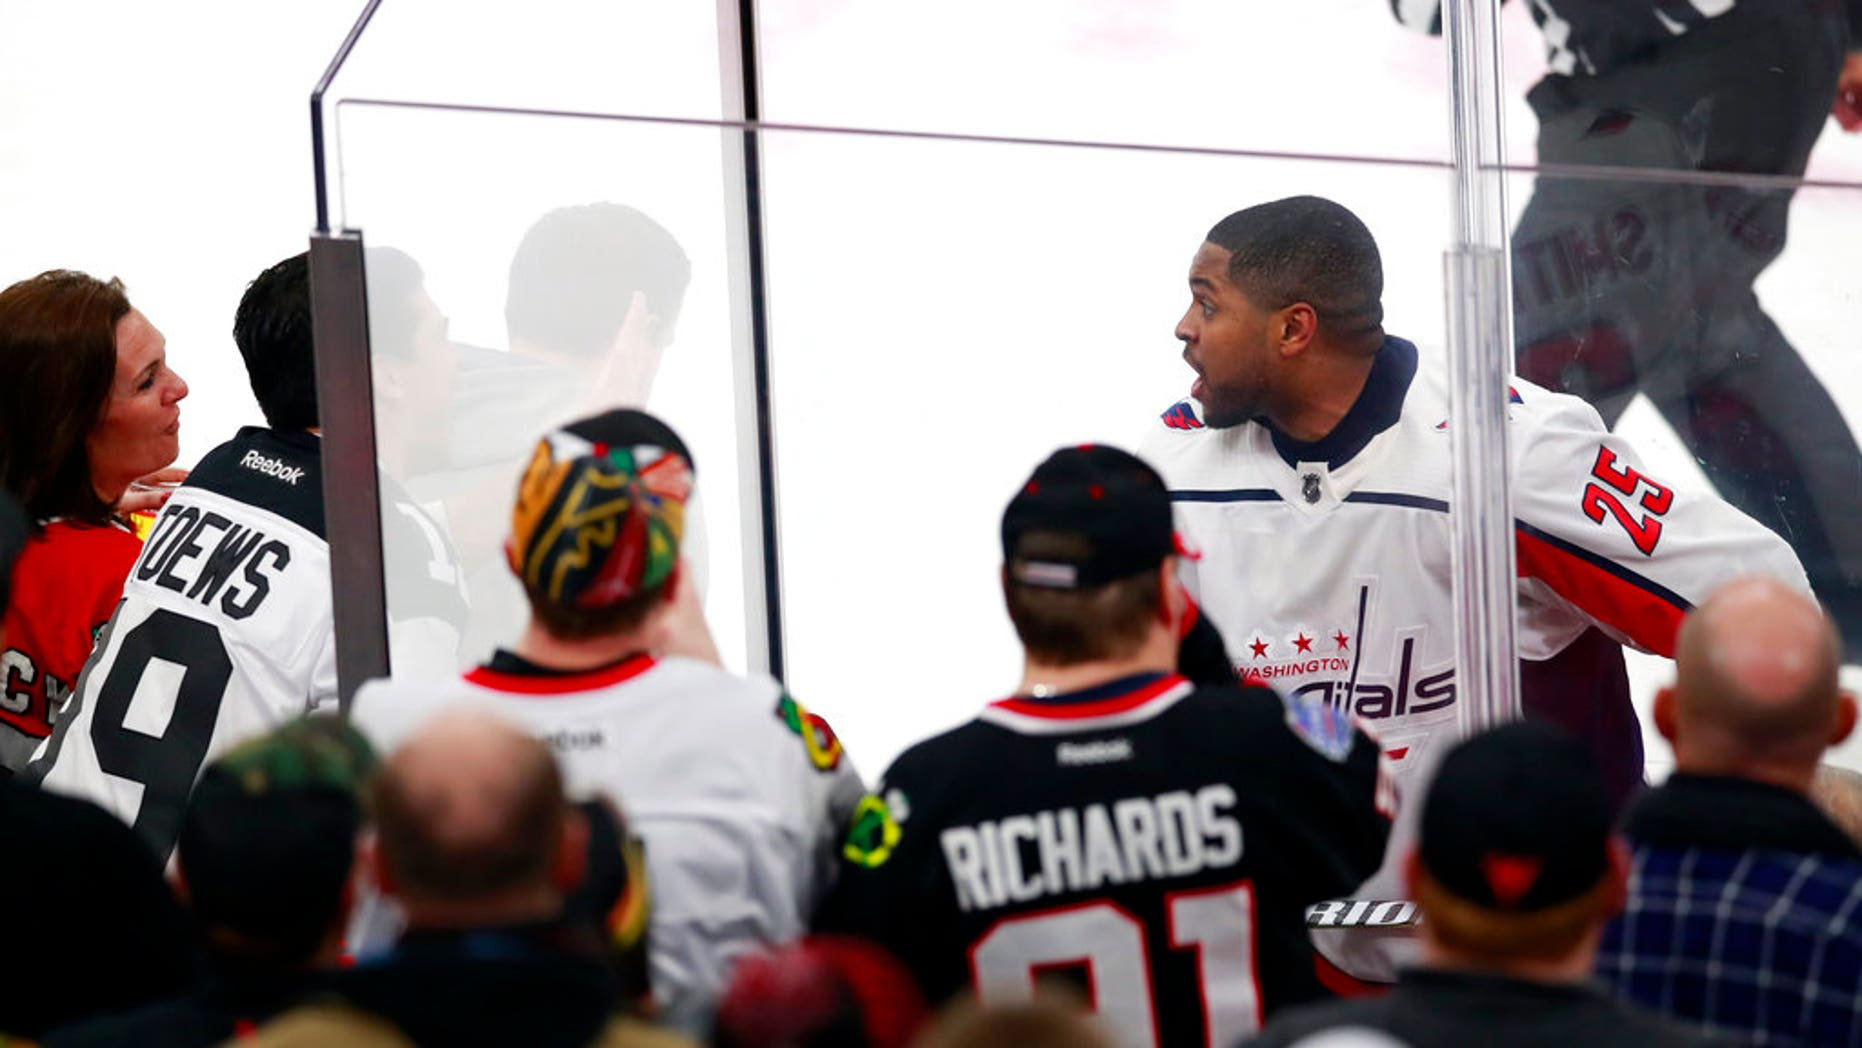 Washington Capitals' Devante Smith-Pelly argues with Chicago Blackhawks fans from the penalty box during the third period of an NHL hockey game Saturday night, in Chicago.